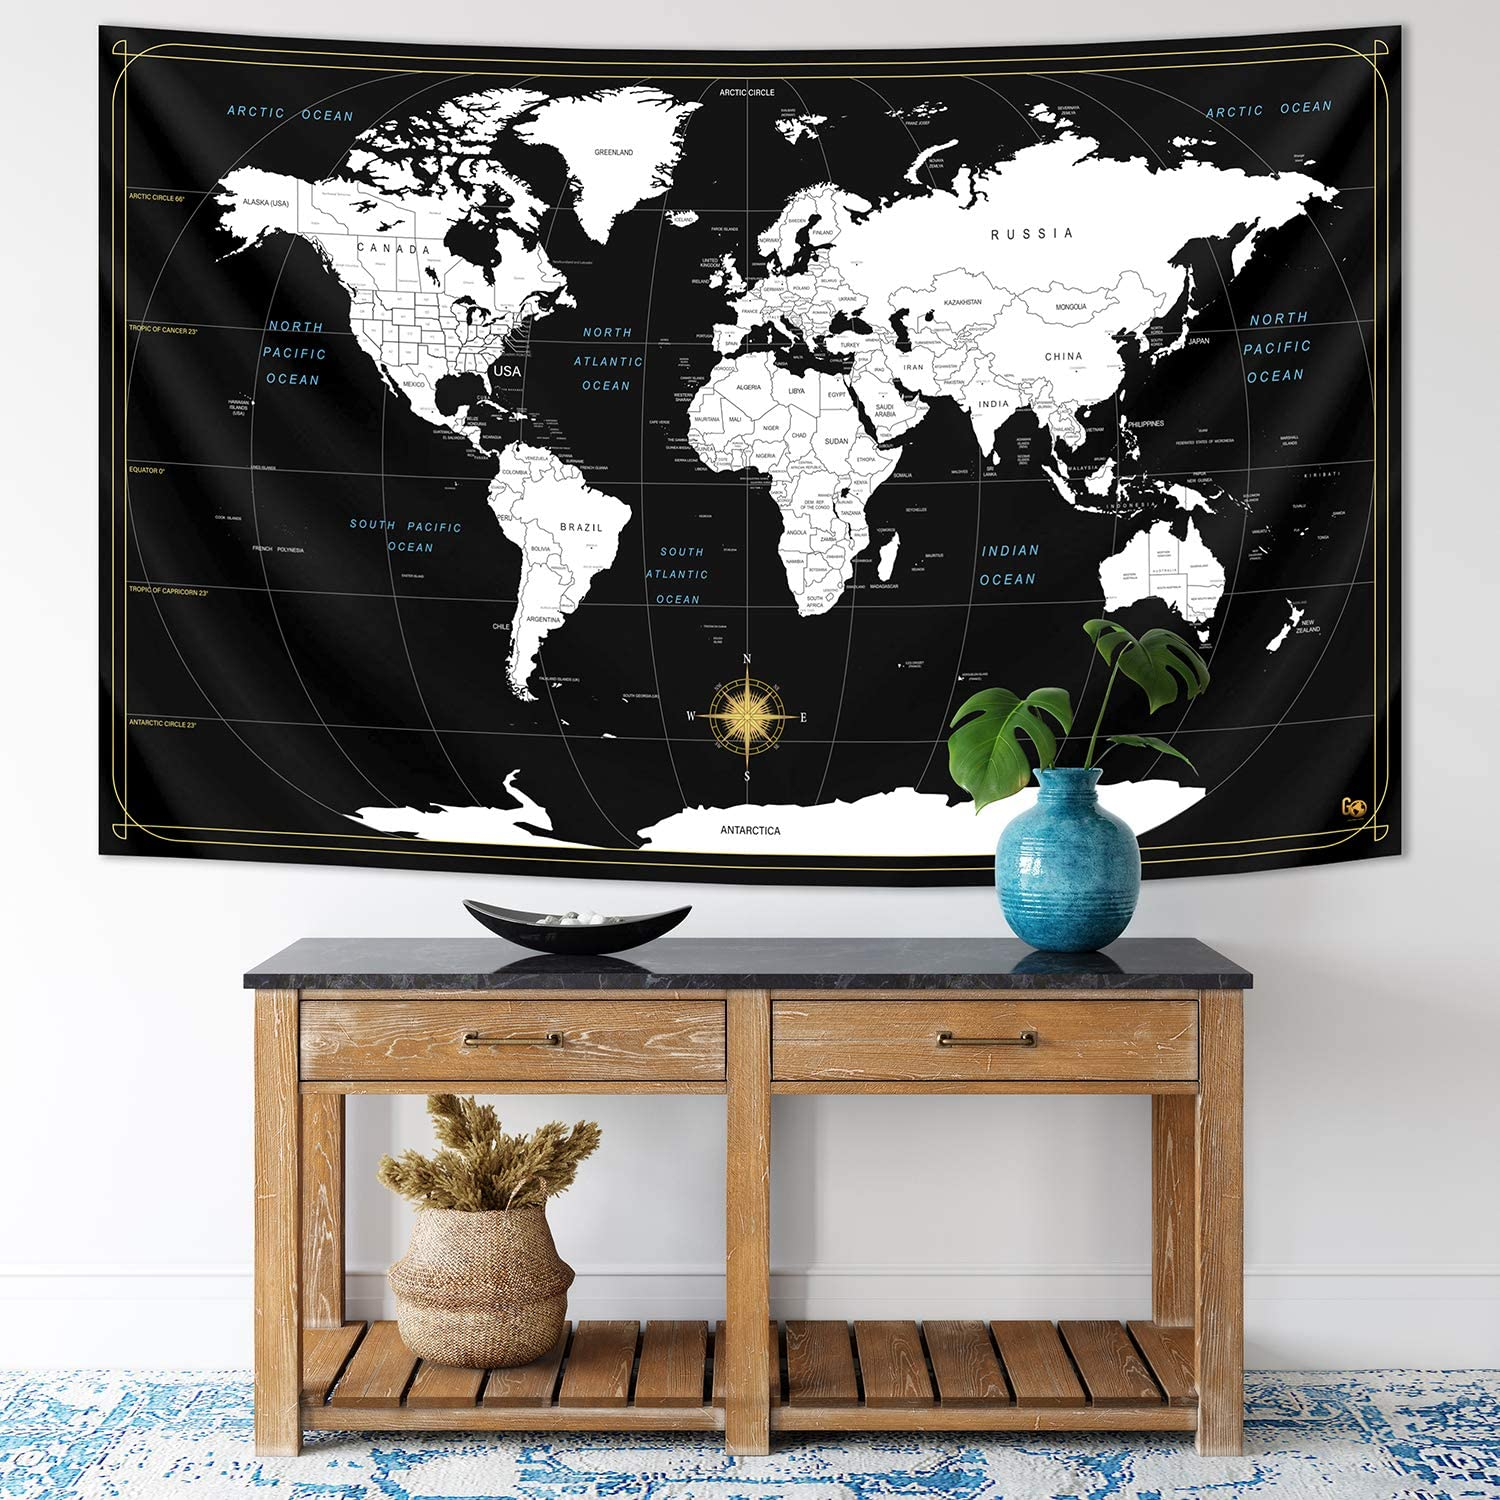 World Map Tapestry - Large Fabric Modern Wall Map Decor - Black and White Hanging Decoration Backdrop for Bedroom, Living Room, Study, Educational Art for Geography, Classroom, School, Travel Lovers